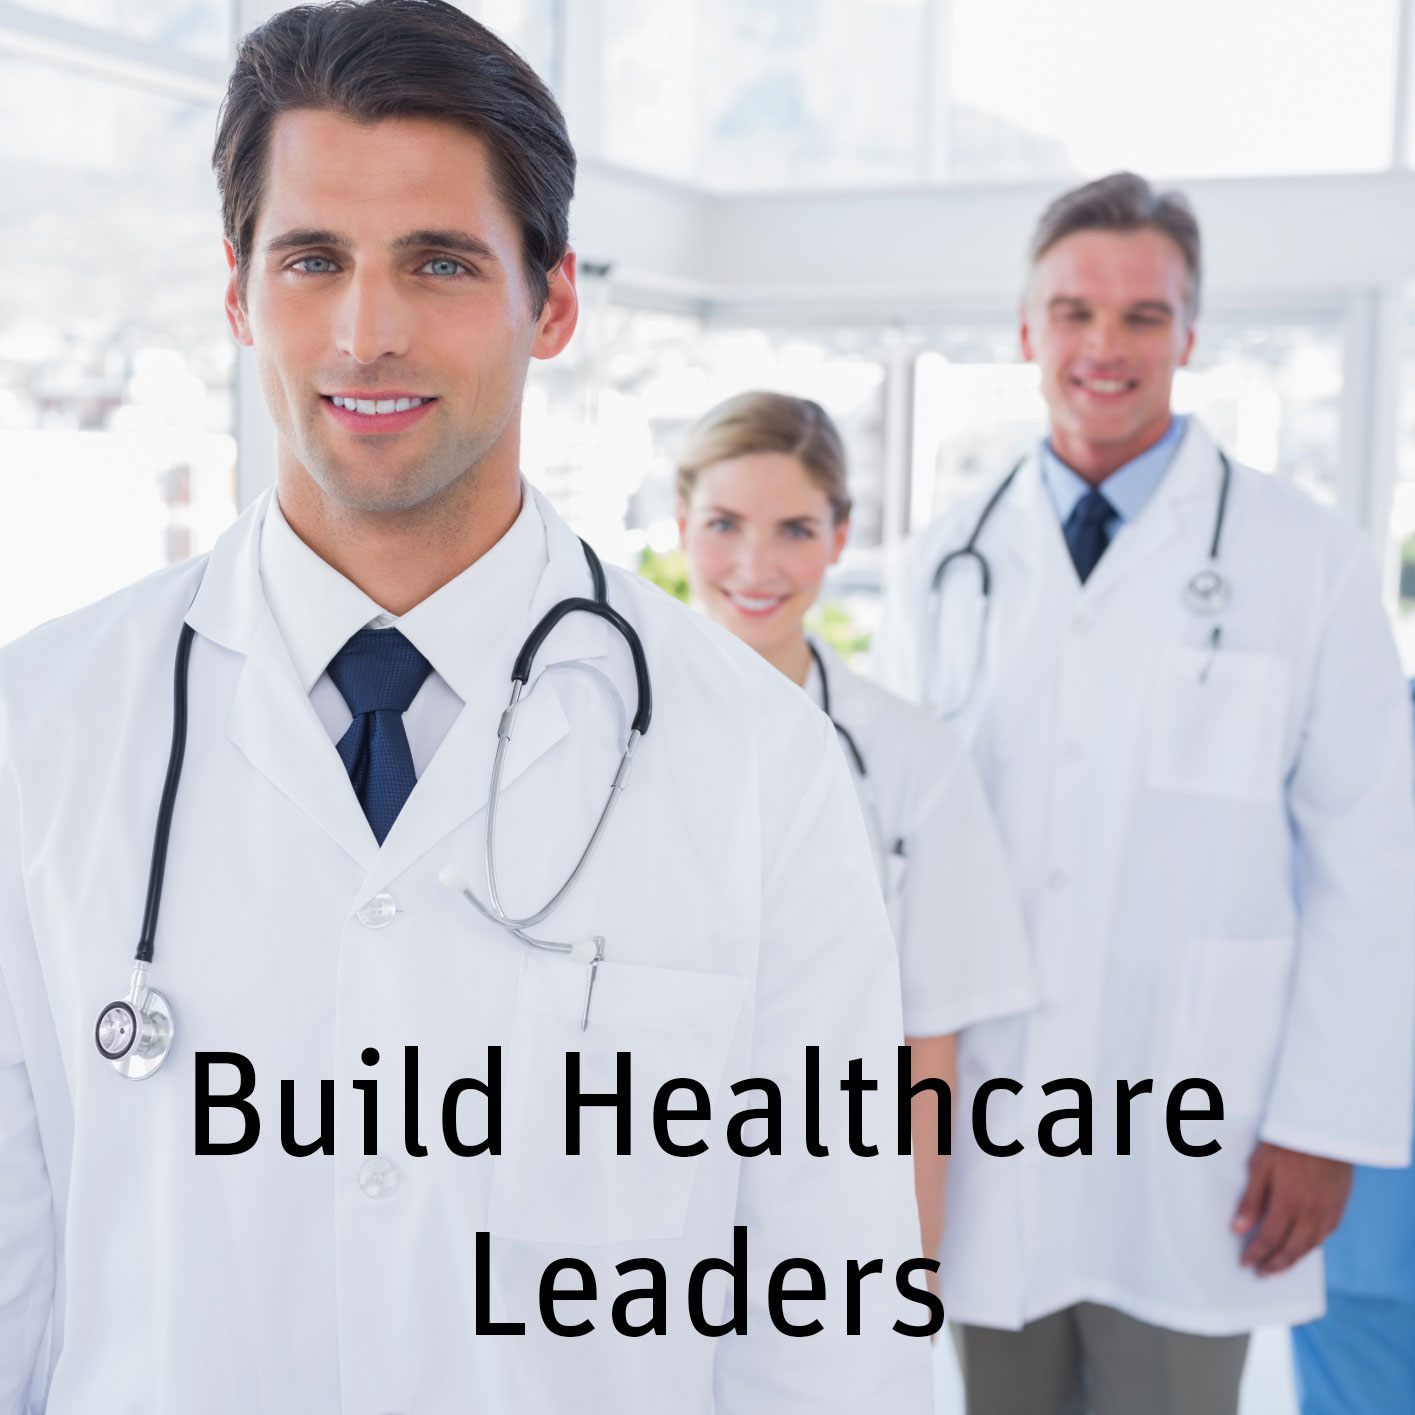 Build-Healthcare-Leaders.jpg